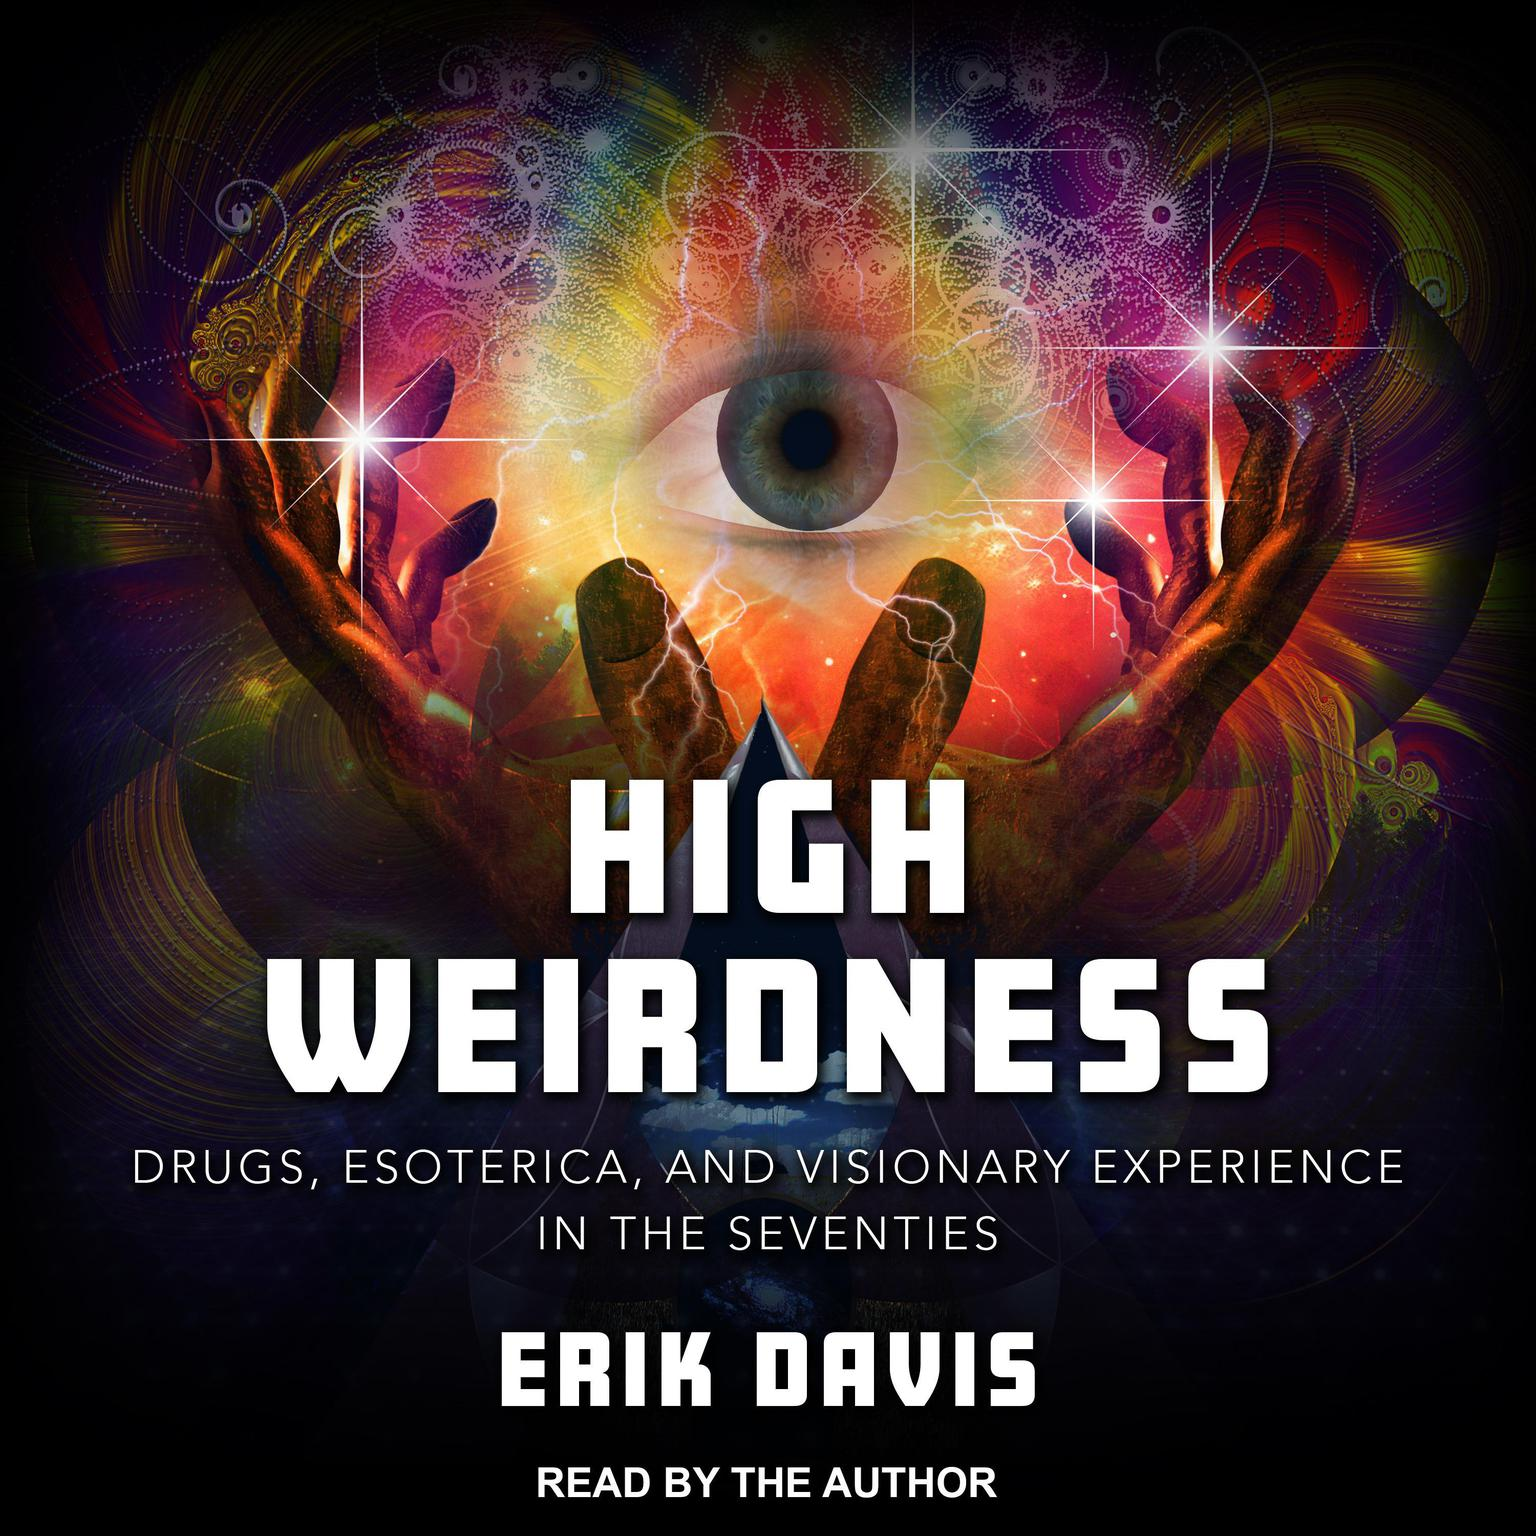 High Weirdness: Drugs, Esoterica, and Visionary Experience in the Seventies Audiobook, by Erik Davis